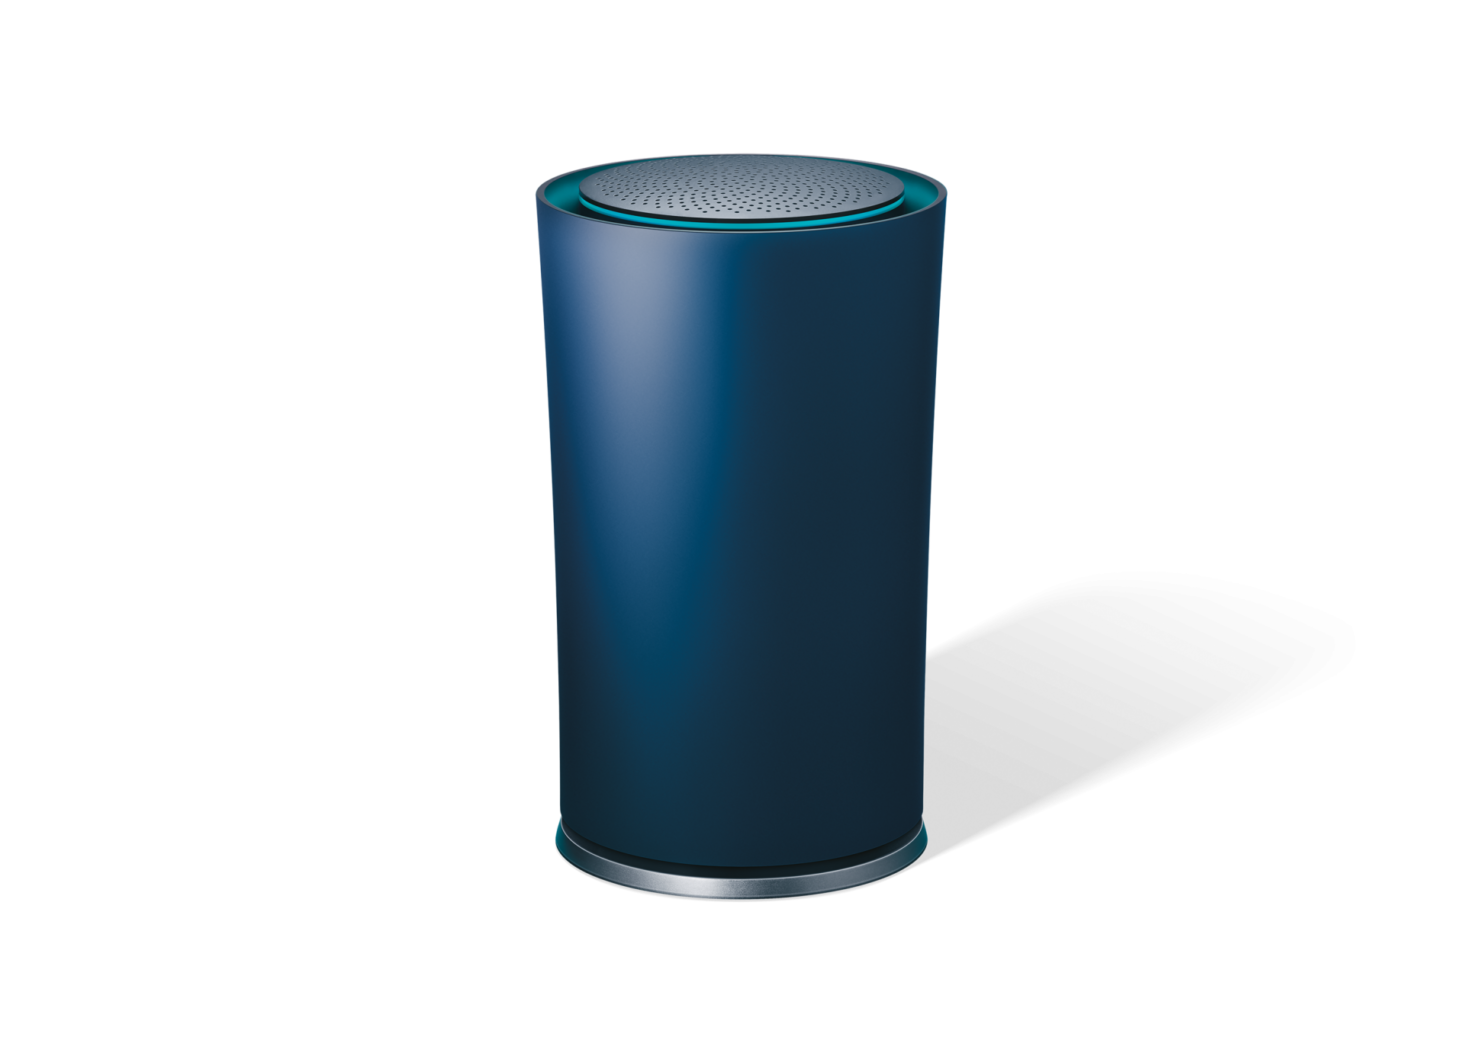 Google Wi-Fi Will Be an Affordable Router Being Announced in October